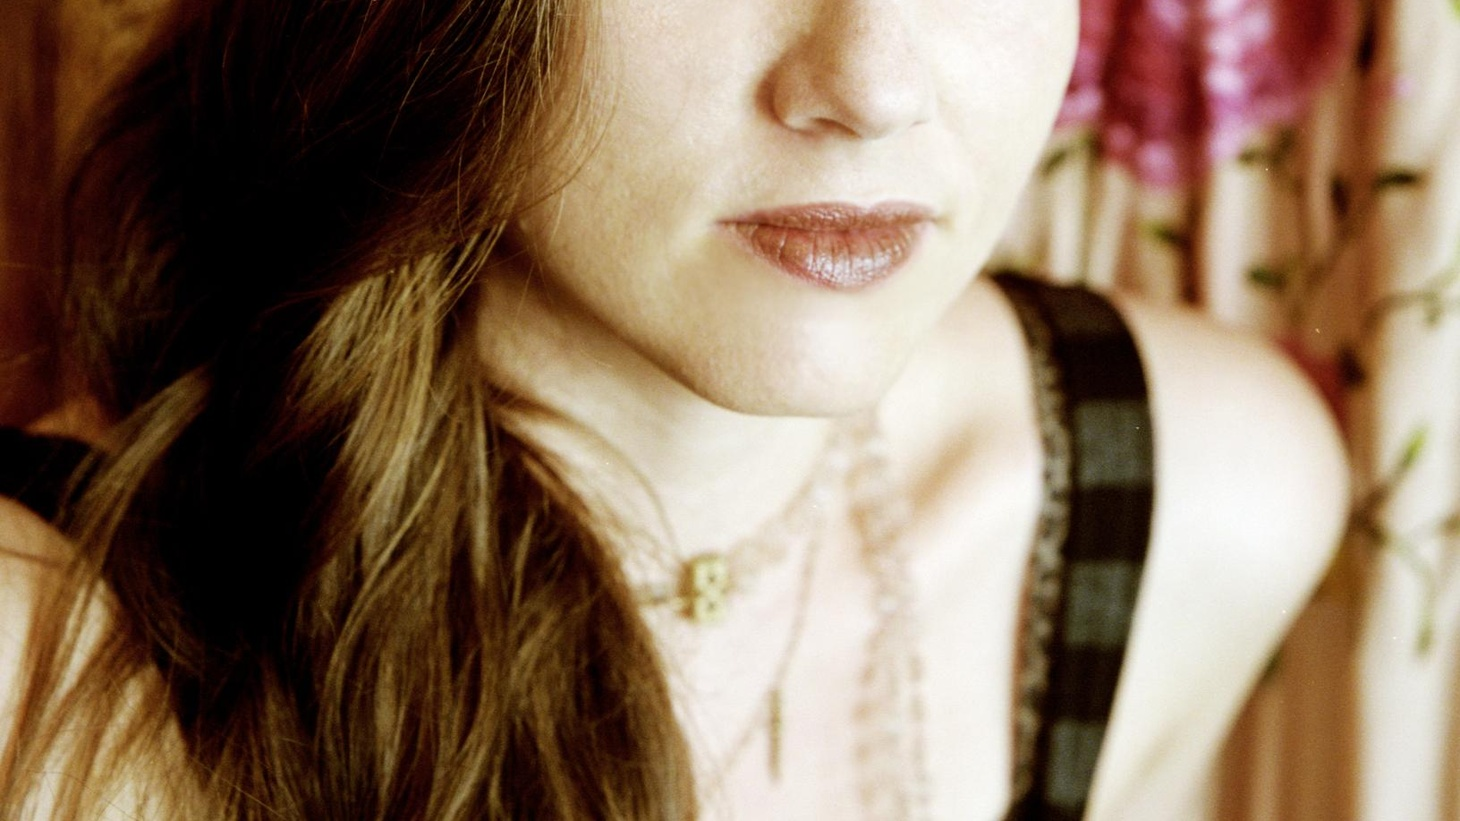 Jolie Holland's new release, Pint of Blood, continues her romance with simple yet penetrating songs...